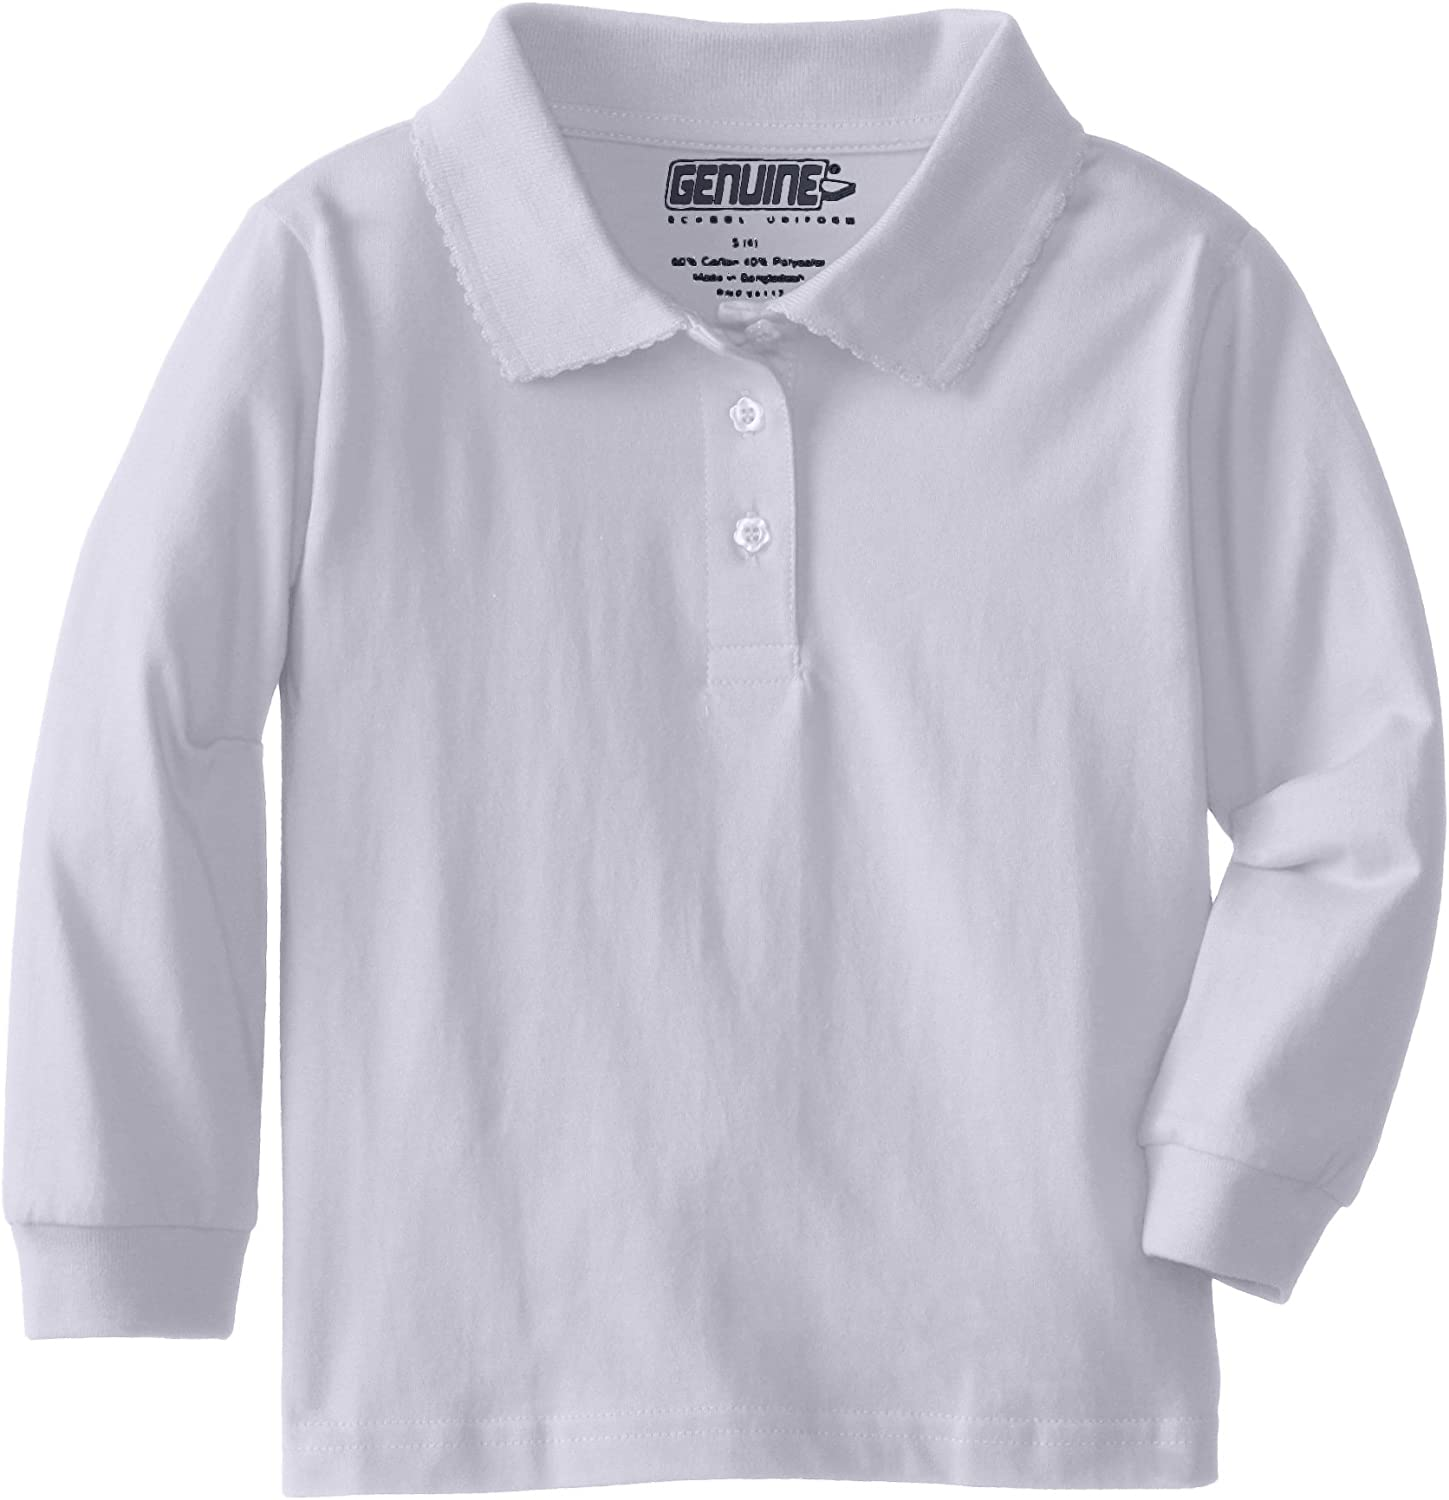 Genuine Girls' Polo Shirt New product Styles Columbus Mall More Available